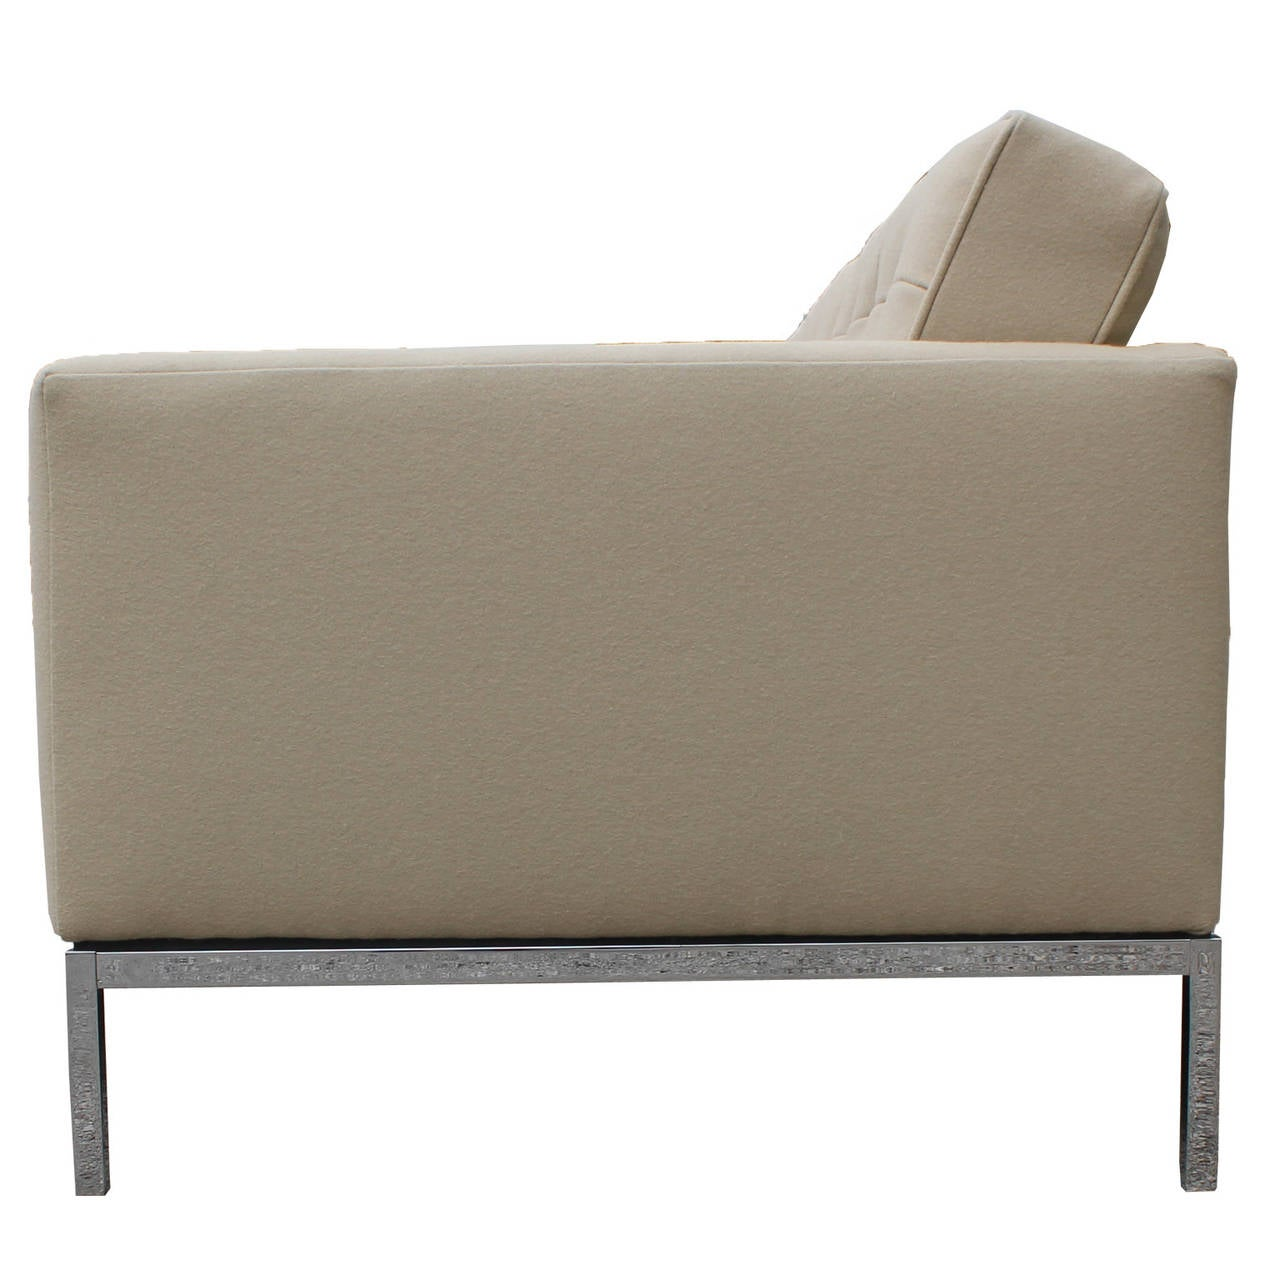 Florence Knoll Sofa Upholstered In Neutral Divina Wool At 1stdibs